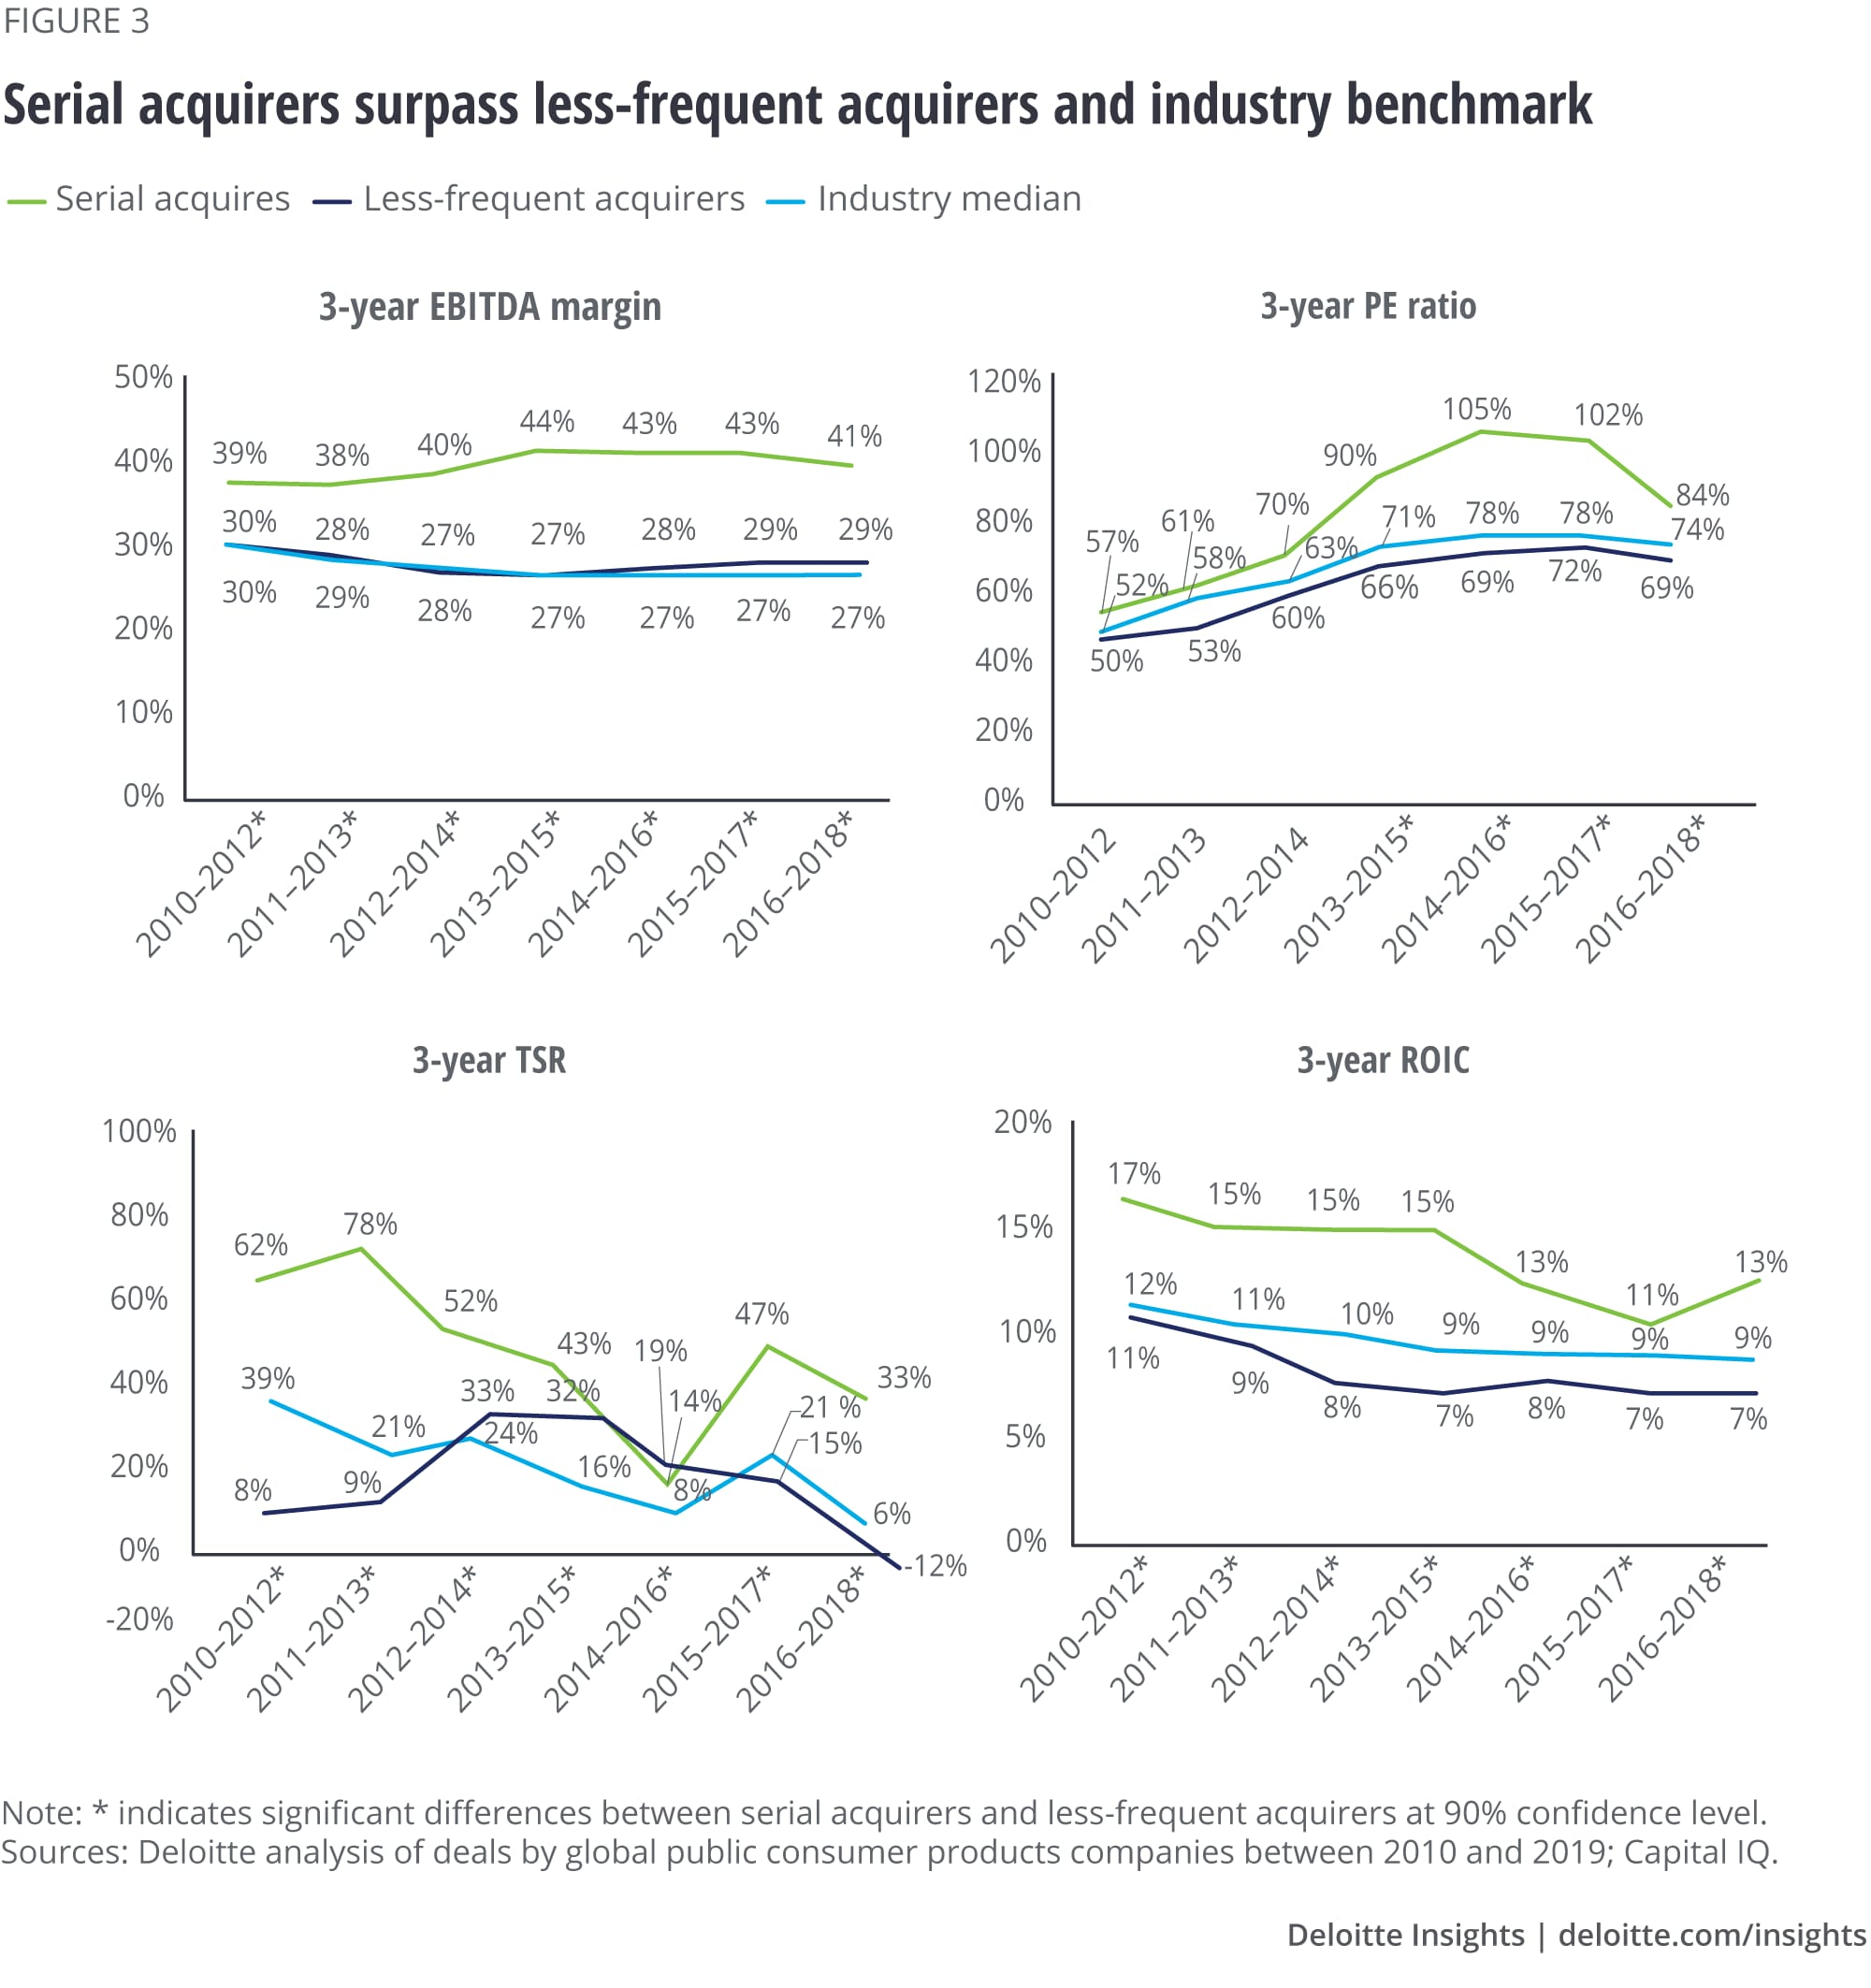 Serial acquirers surpass less frequent acquirers and industry benchmark